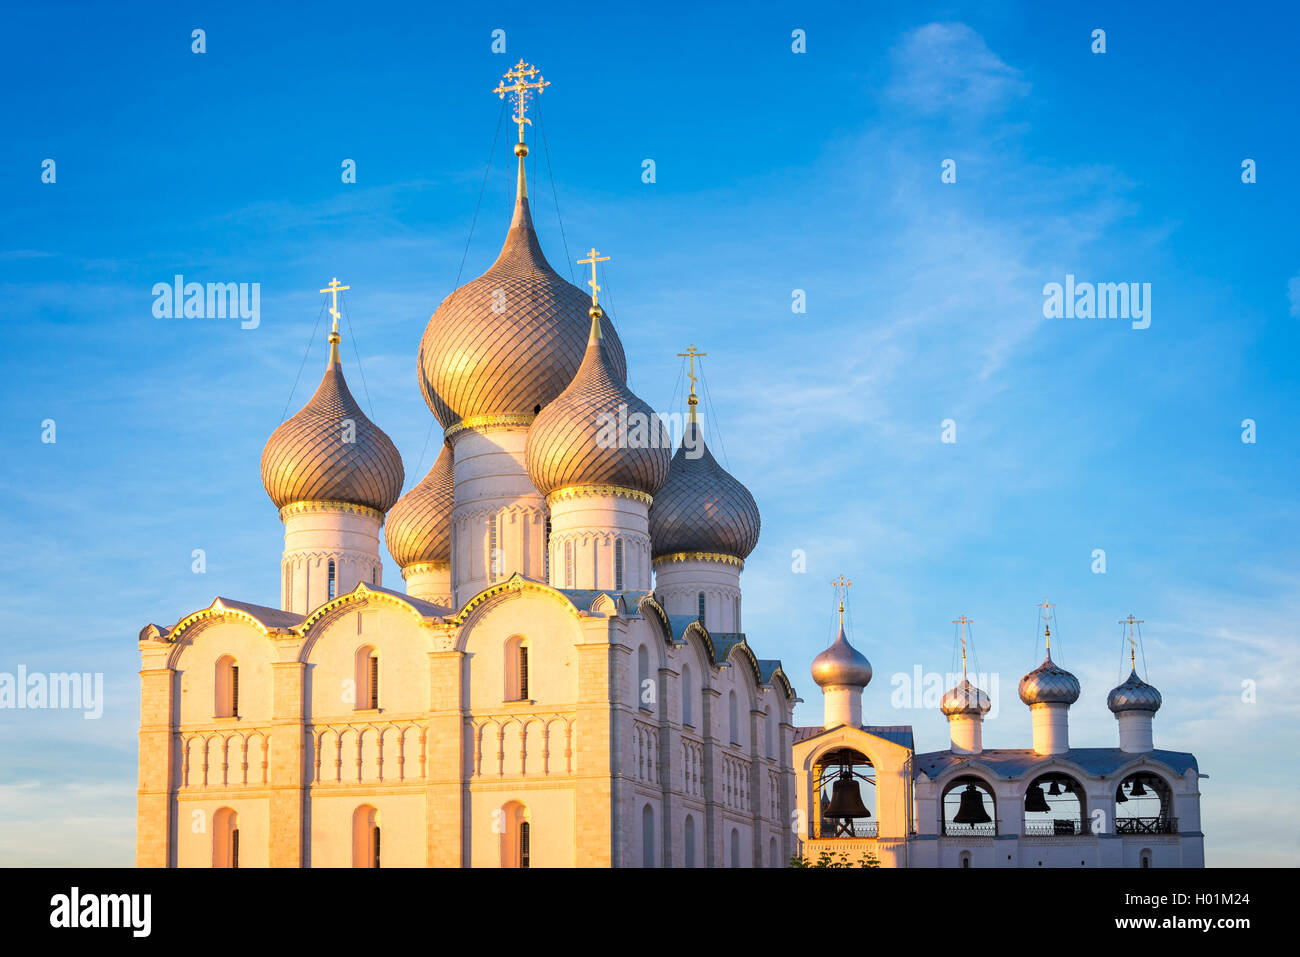 Rostov kremlin, Assumption cathedral, Golden Ring, Russia - Stock Image